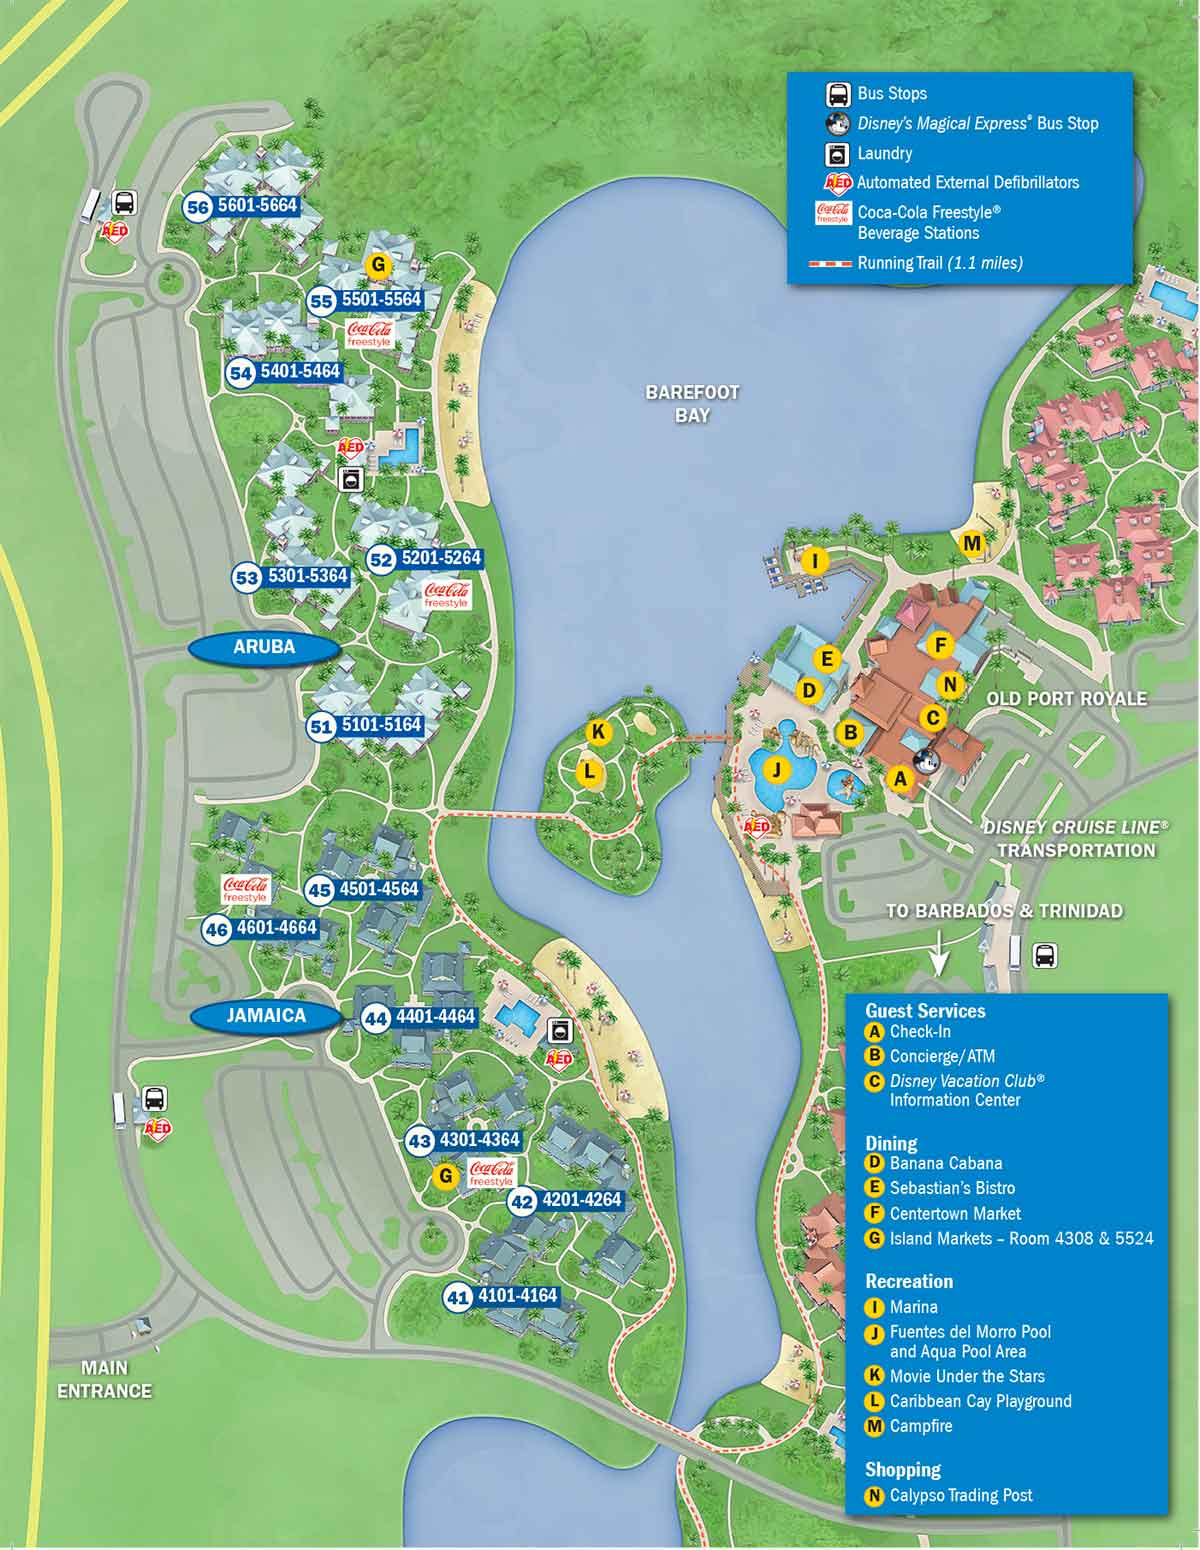 Disneys Caribbean Beach Resort Map Wdwinfocom - Map of caribbean